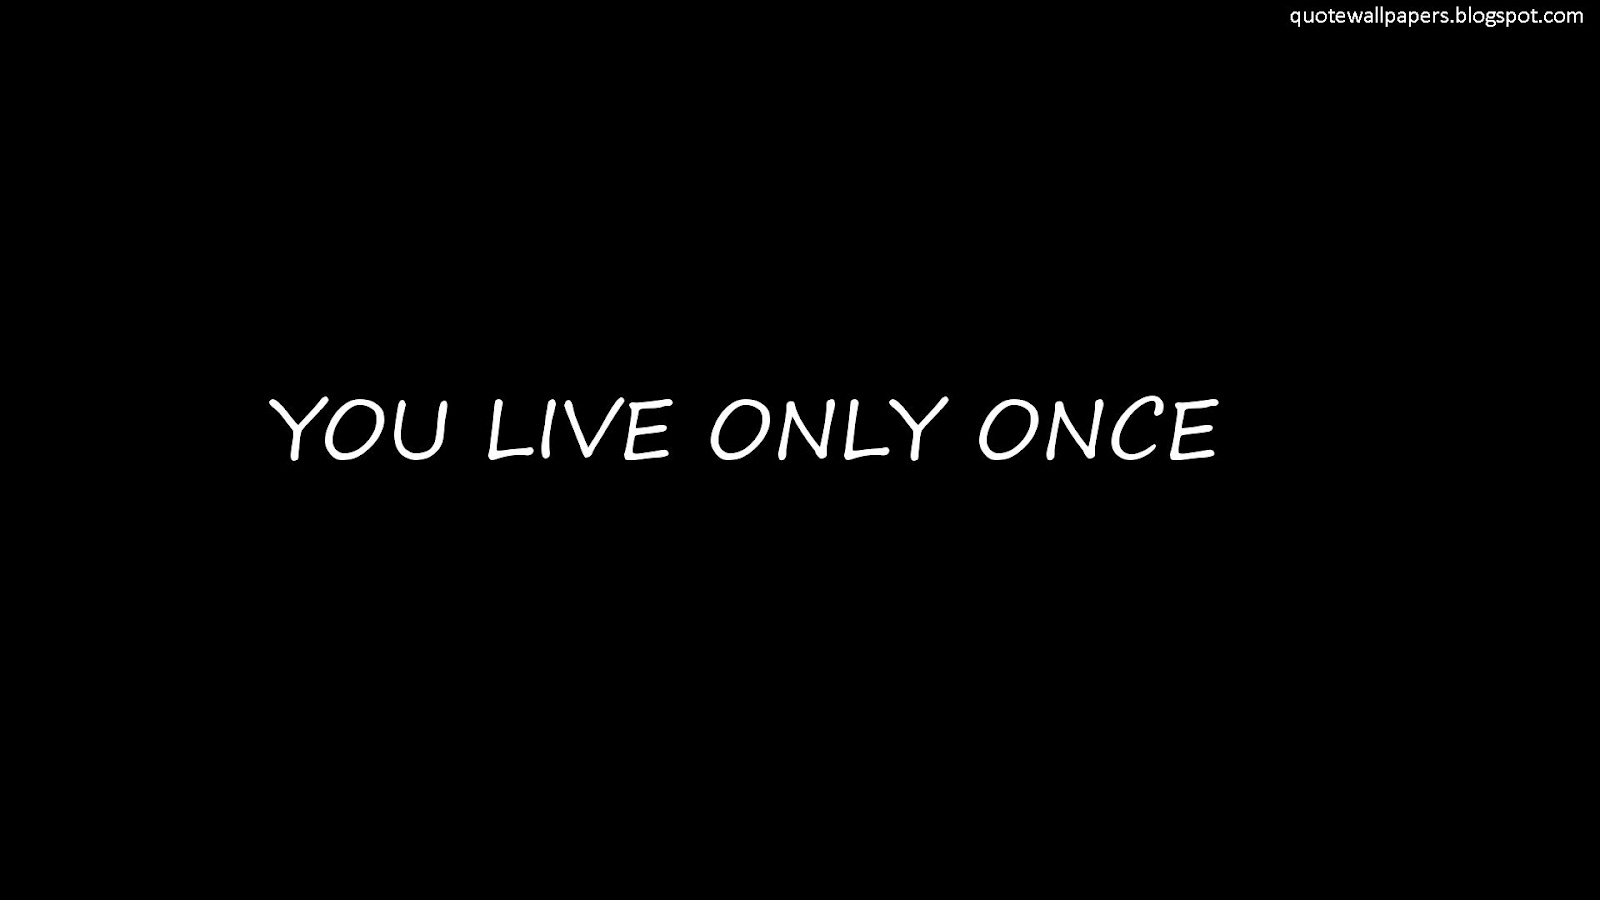 Do It You Only Live Once I'm Sure We Are All Going To Hell Anyways